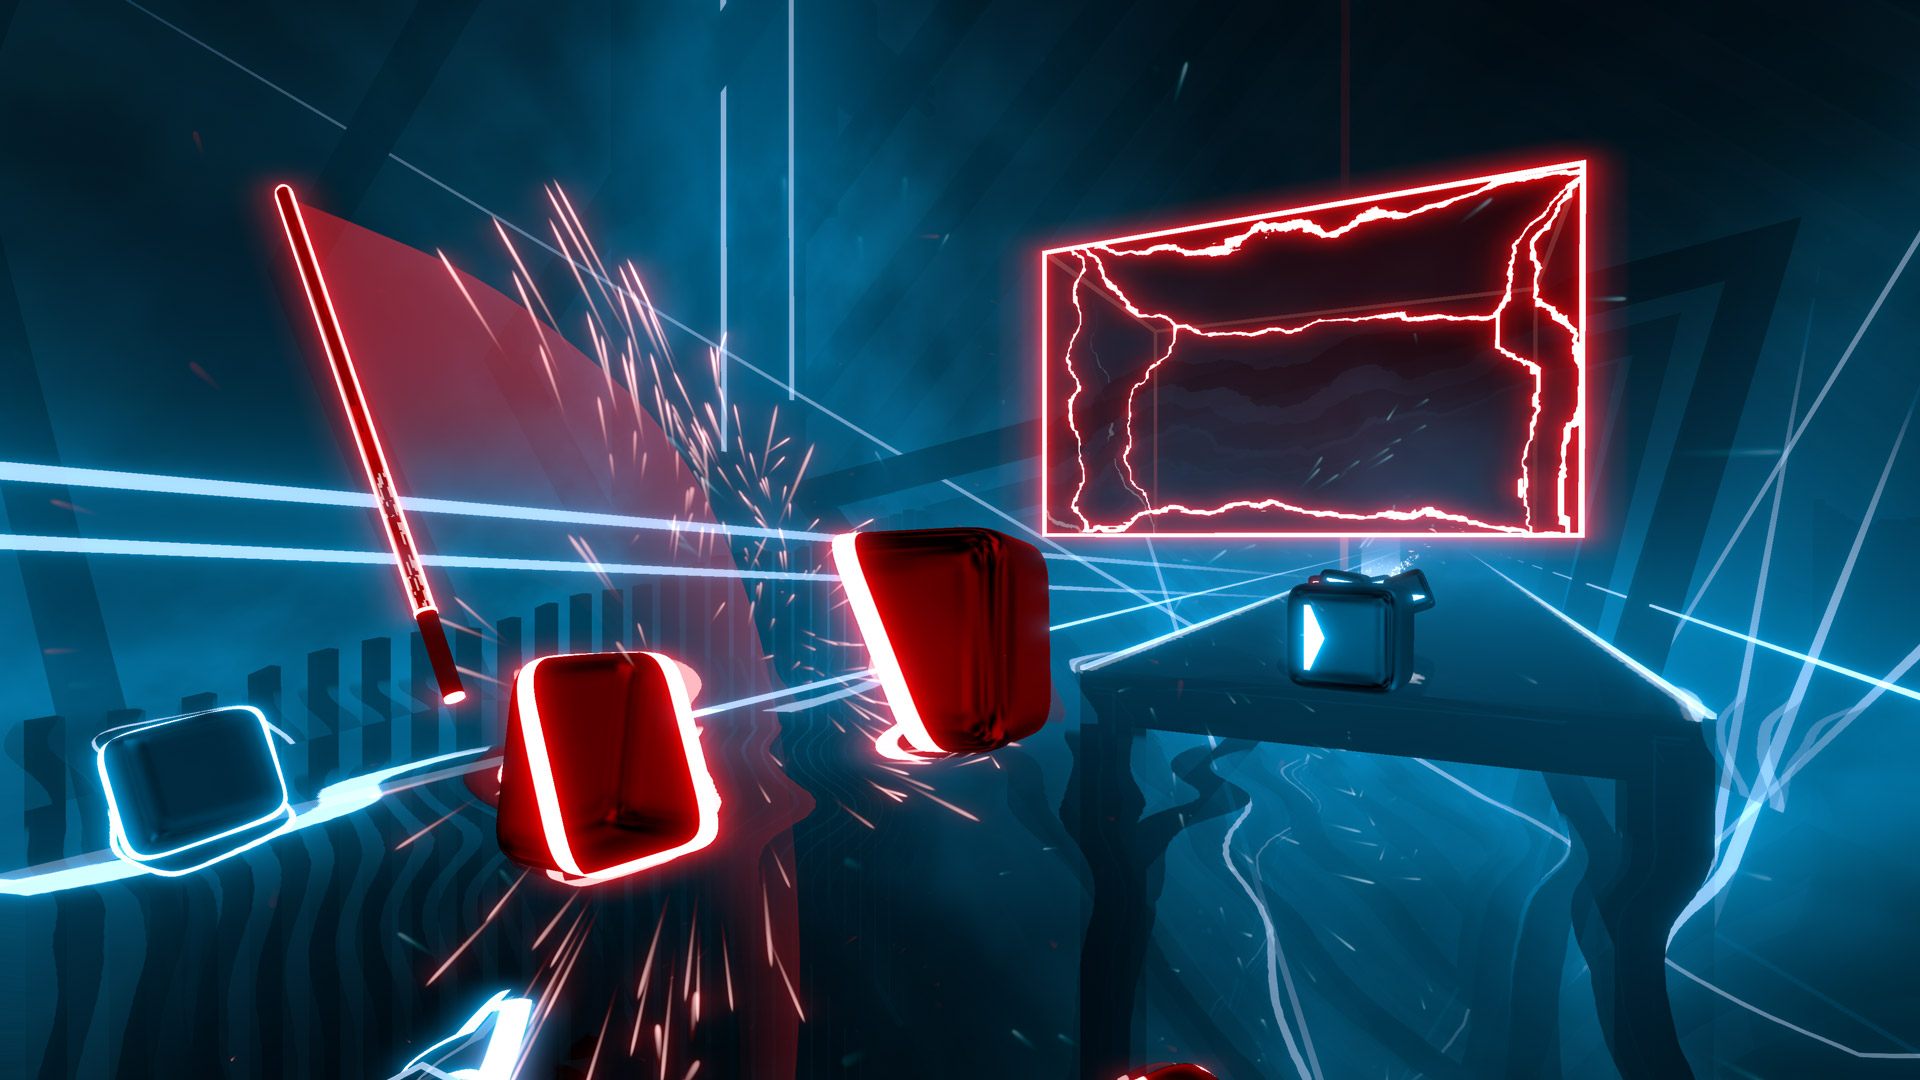 New 'Beat Saber' Music Pack Coming June 10th – Road to VR